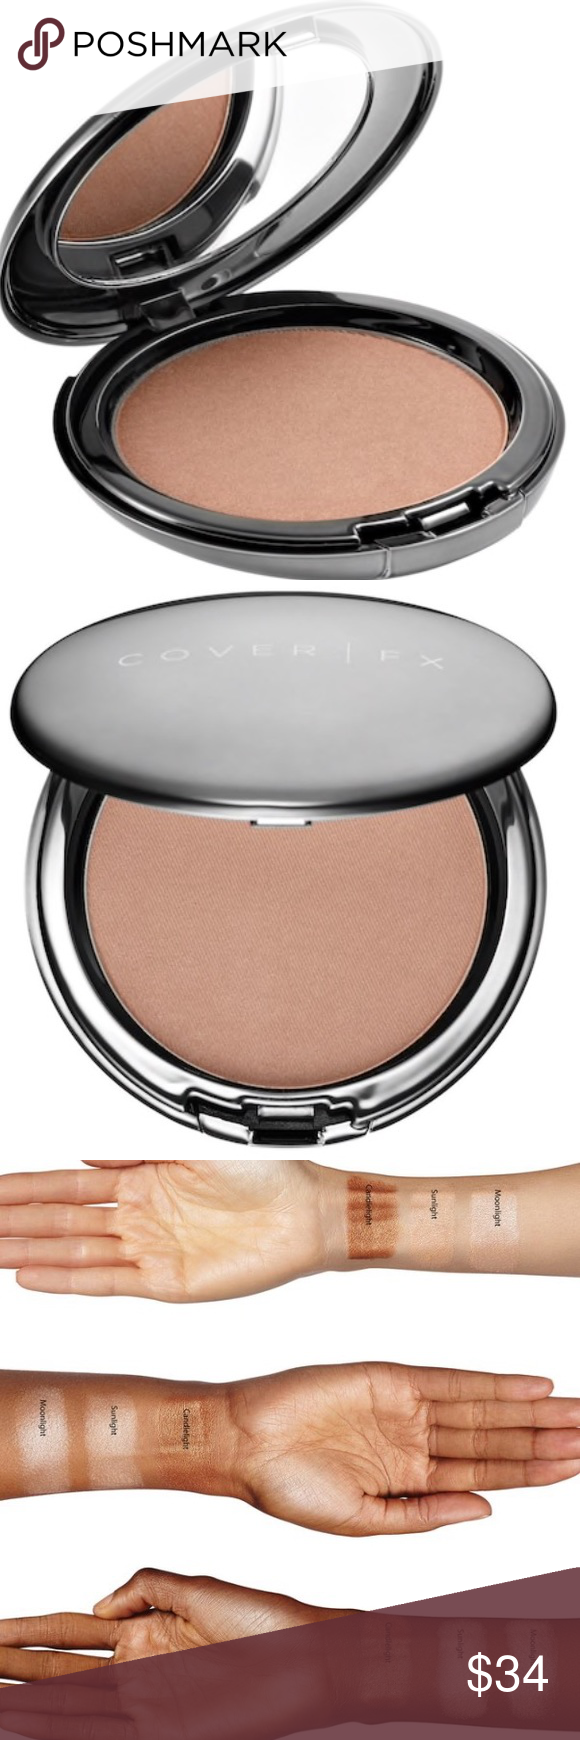 Cover Fx The Perfect Light Highlighting Powder Color Sunlight Soft Gold Glow A Silky Talc Free Pressed Highli Cover Fx Makeup Cover Fx Perfect Lights